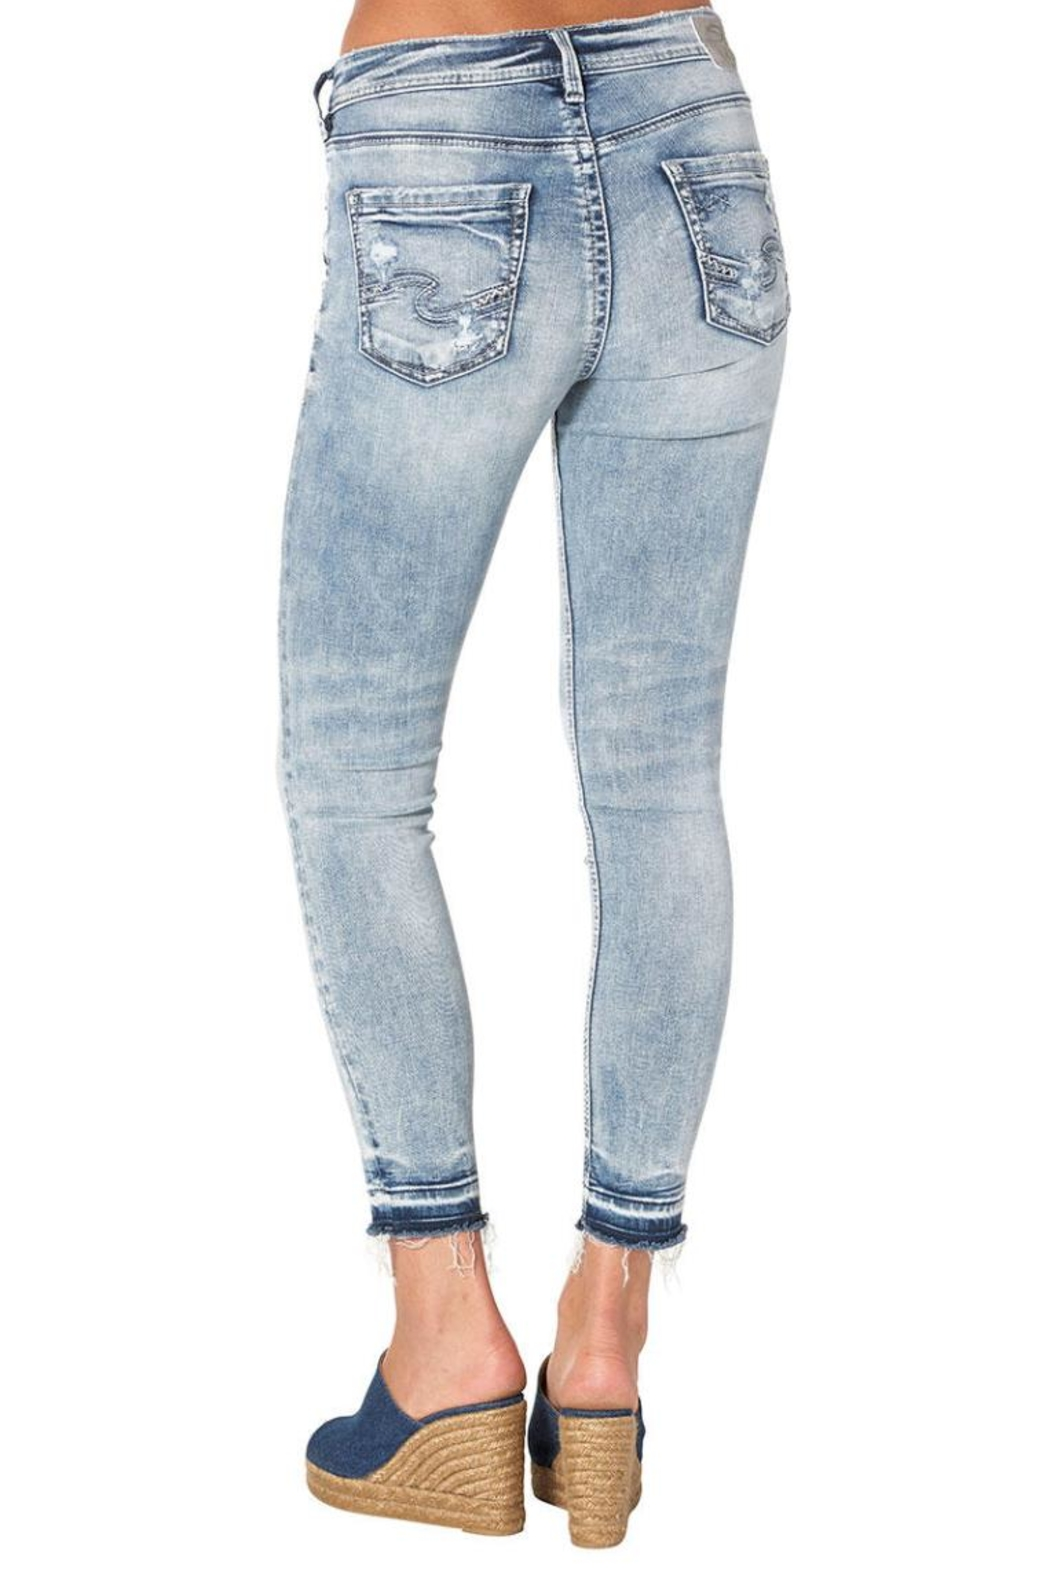 Silver Jeans Co. Avery Ankle Skinny - Front Full Image